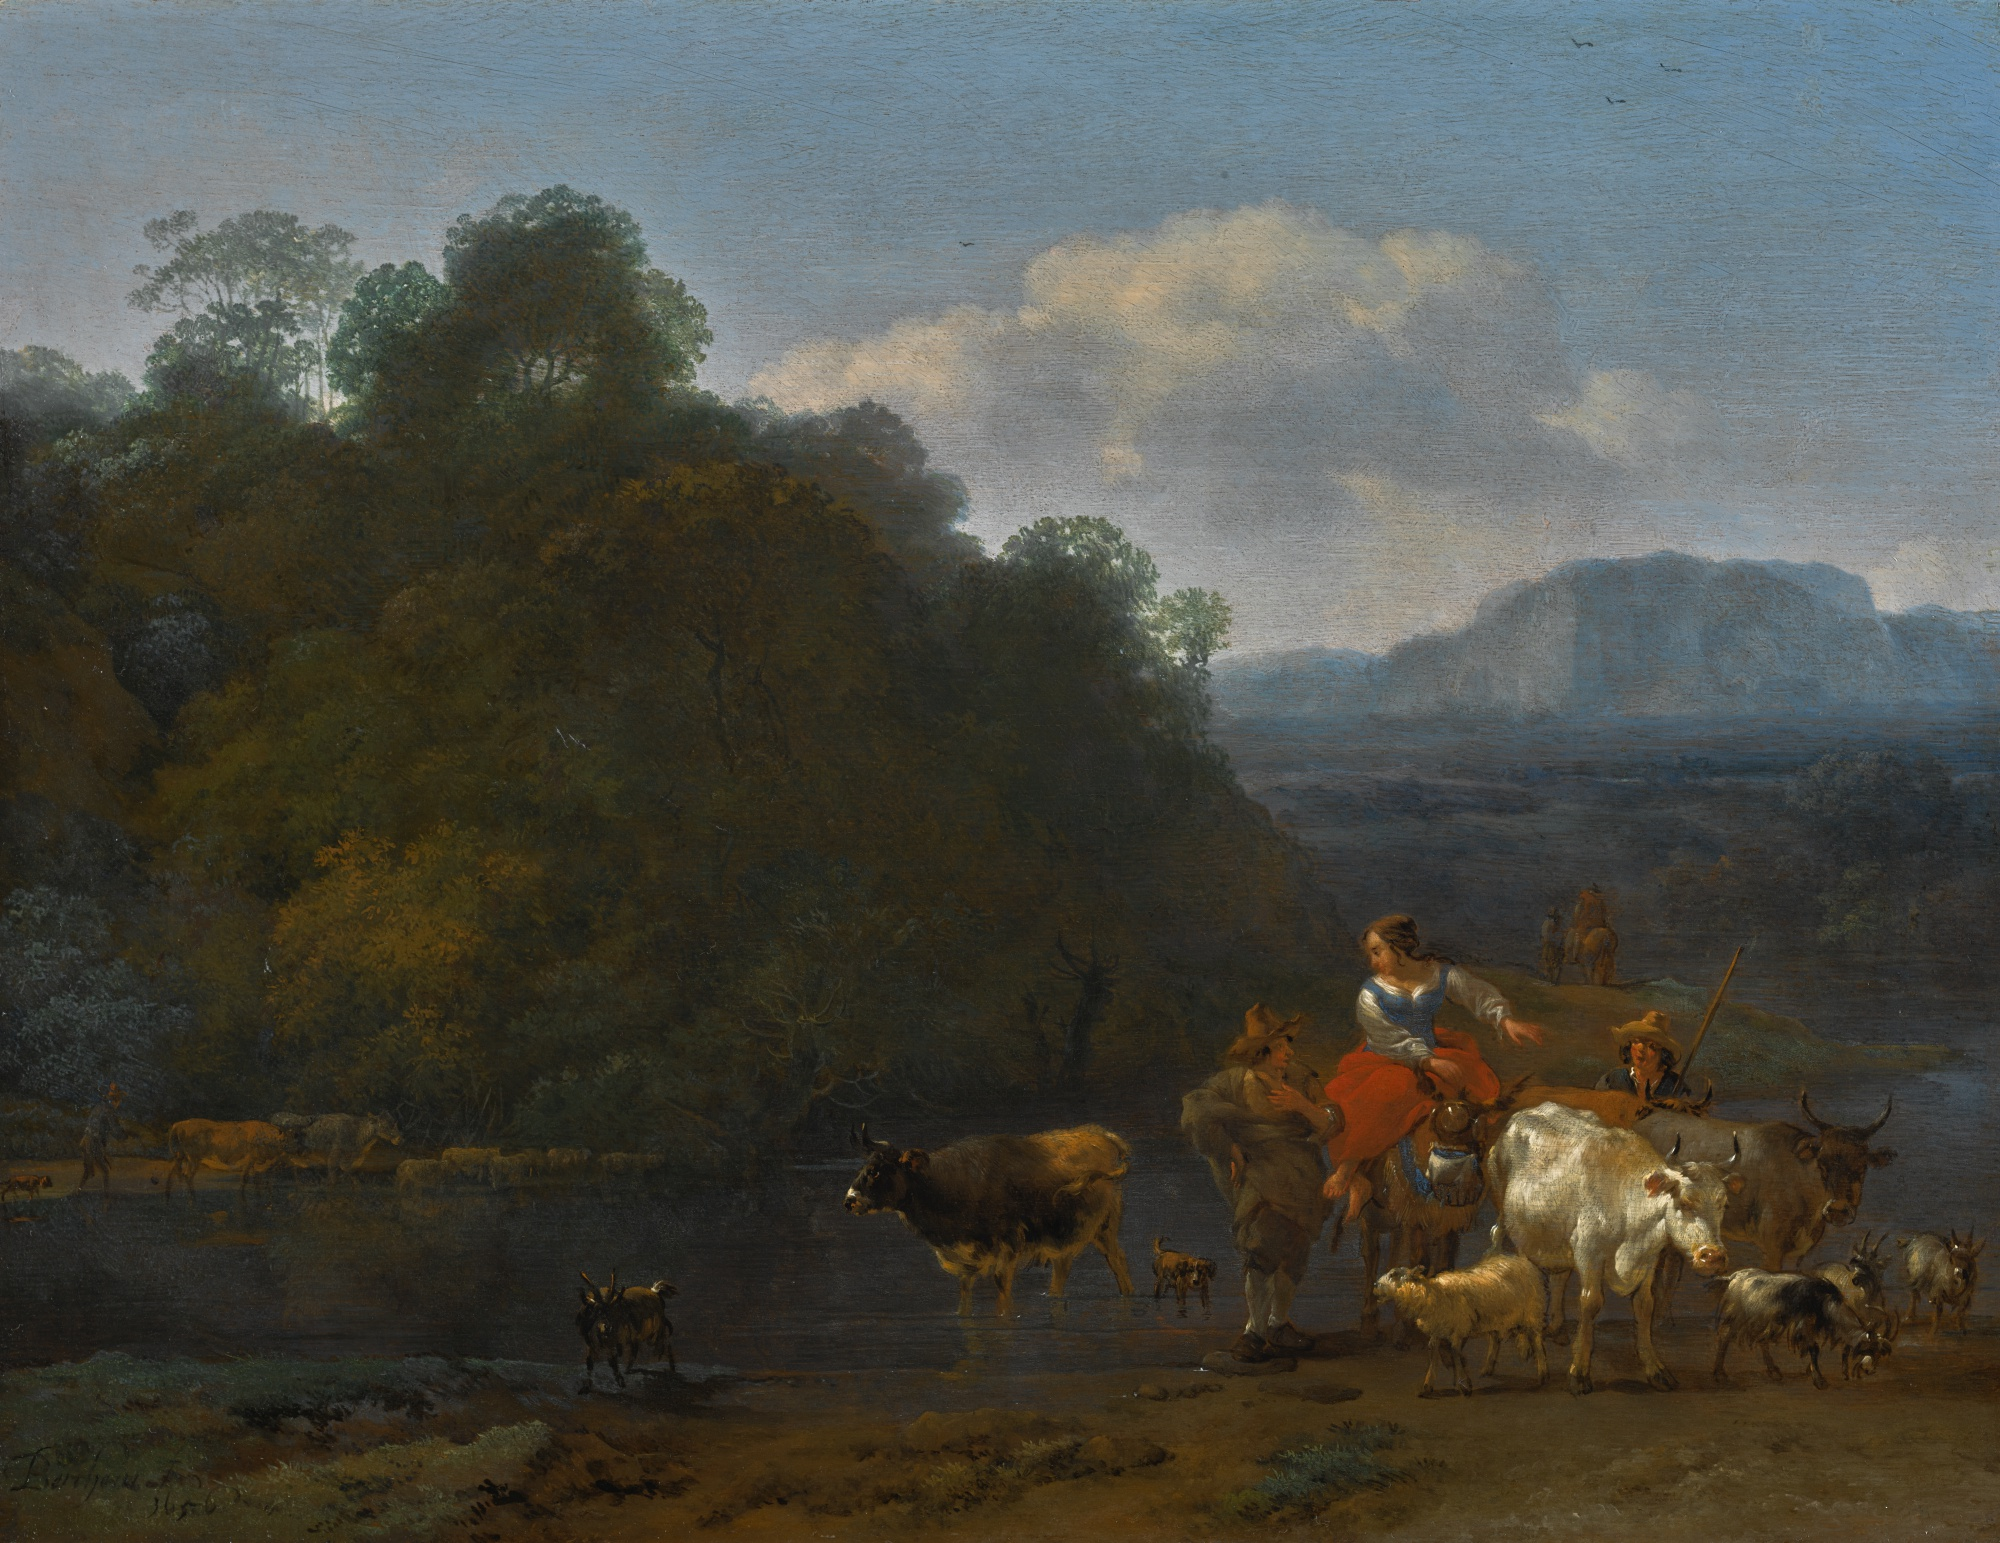 NICOLAES PIETERSZ. BERCHEM (Haarlem 1620 - 1683 Amsterdam) Southern landscape with shepherds and their animals fording a stream